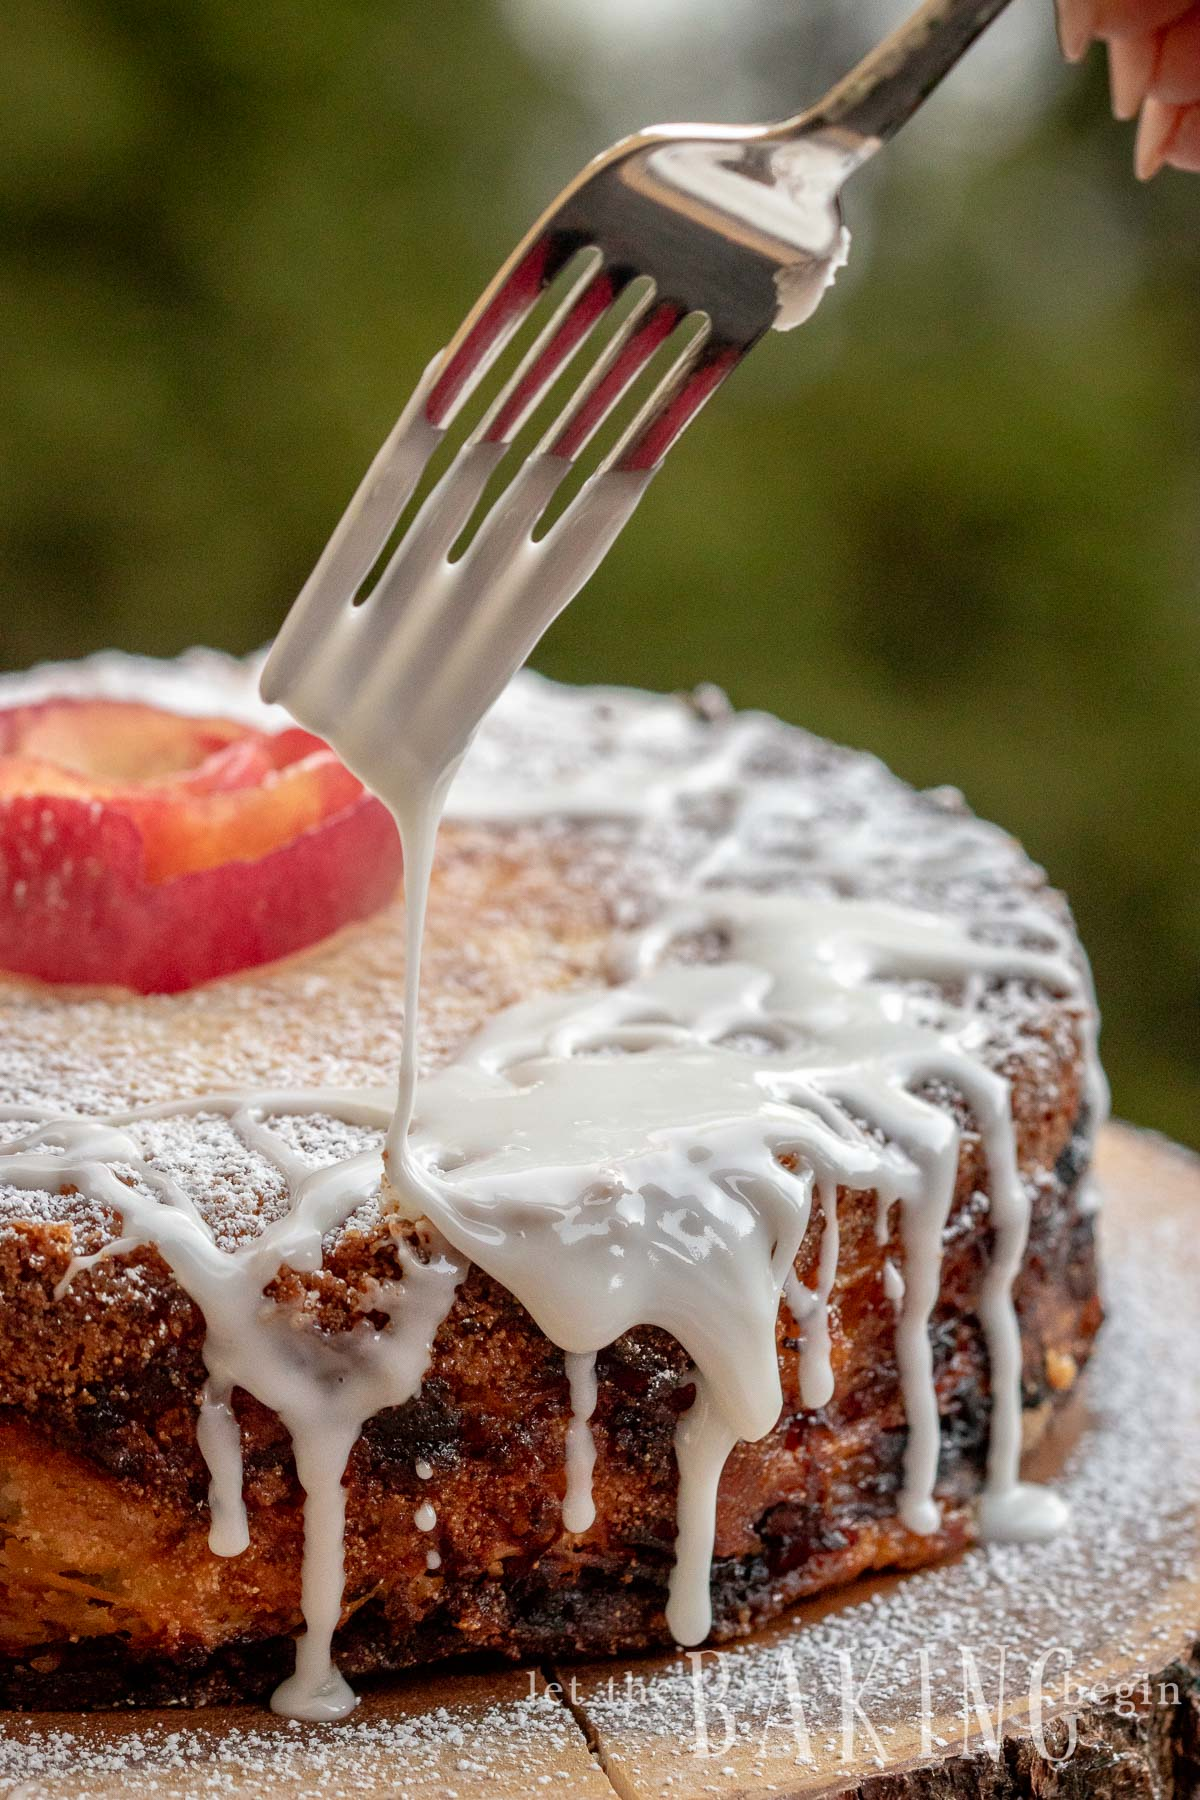 Quick Apple Cake is a version of the Apple Dump Cake where the dry ingredients are layered with shredded apples before being baked together into a layer apple cake. This is the perfect fall coffee cake that's quick, easy and tastes perfect with a cup of hot tea after on busy weeknight.